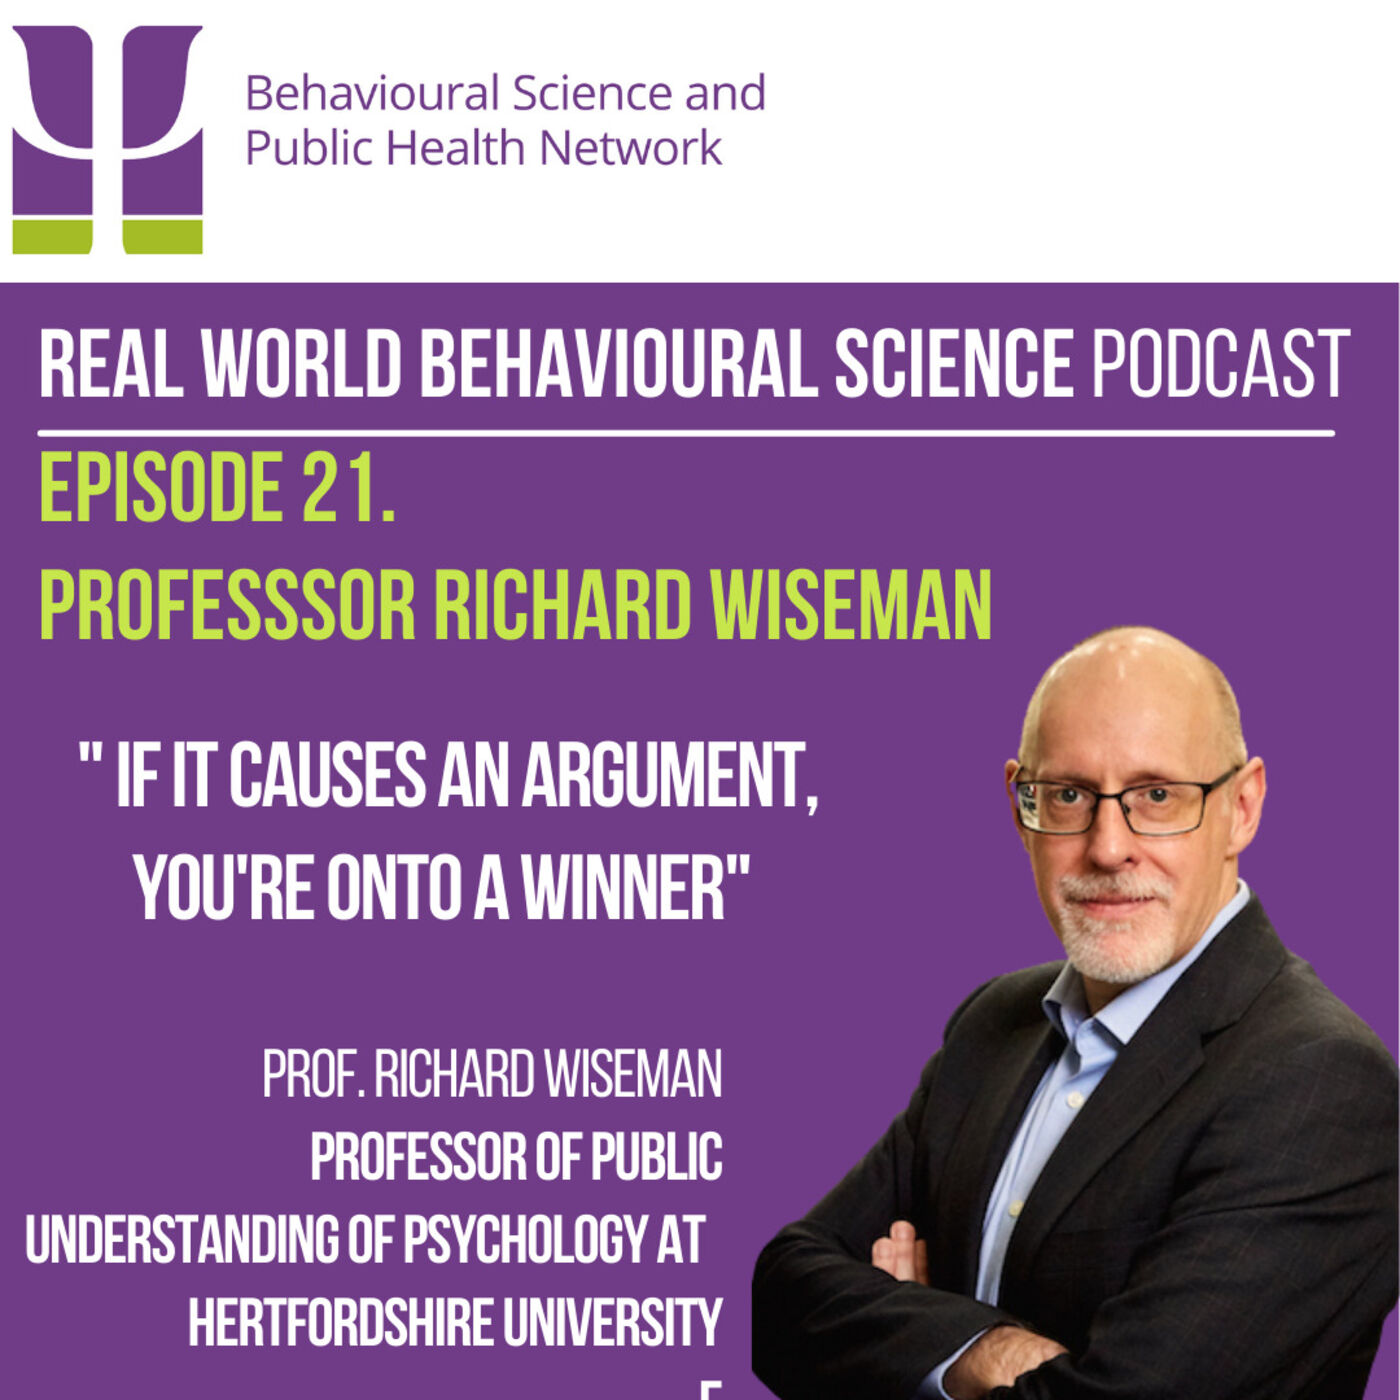 20. Richard Wiseman (Professor of Public Understanding of Psychology at the University of Hertfordshire)